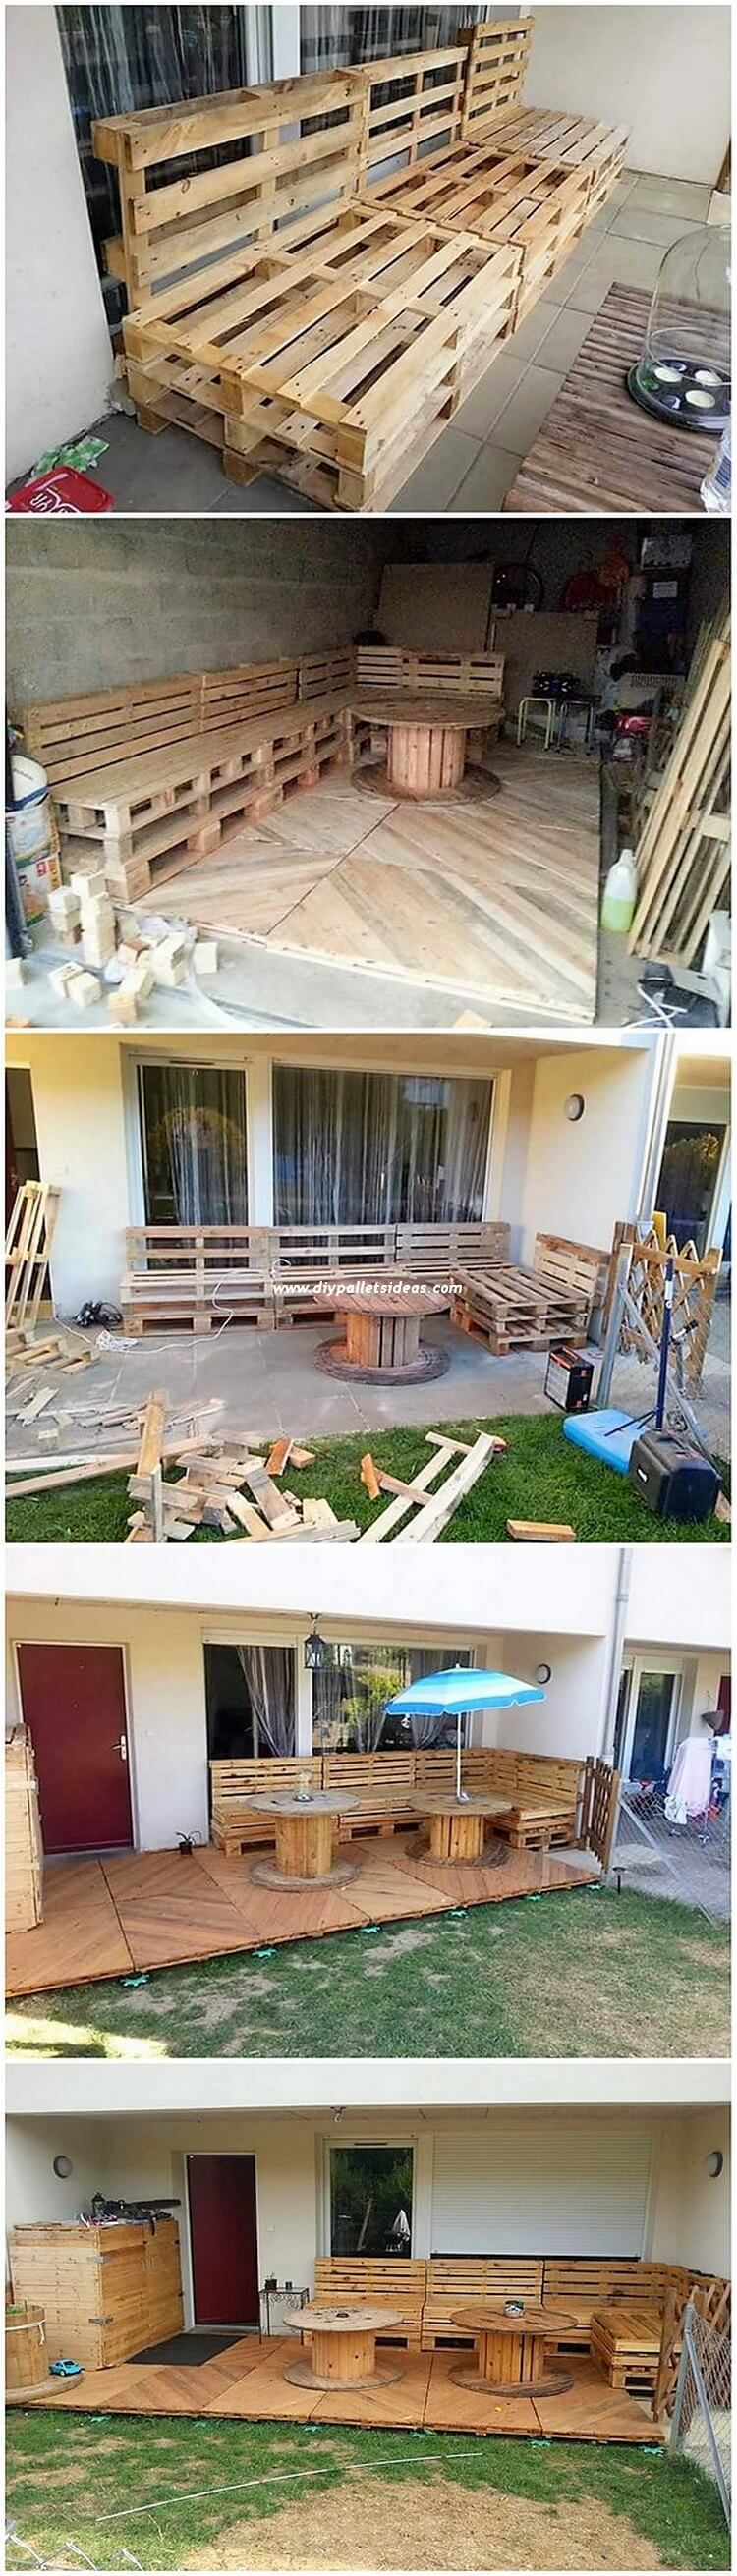 DIY Pallet Couch with Garden Terrace